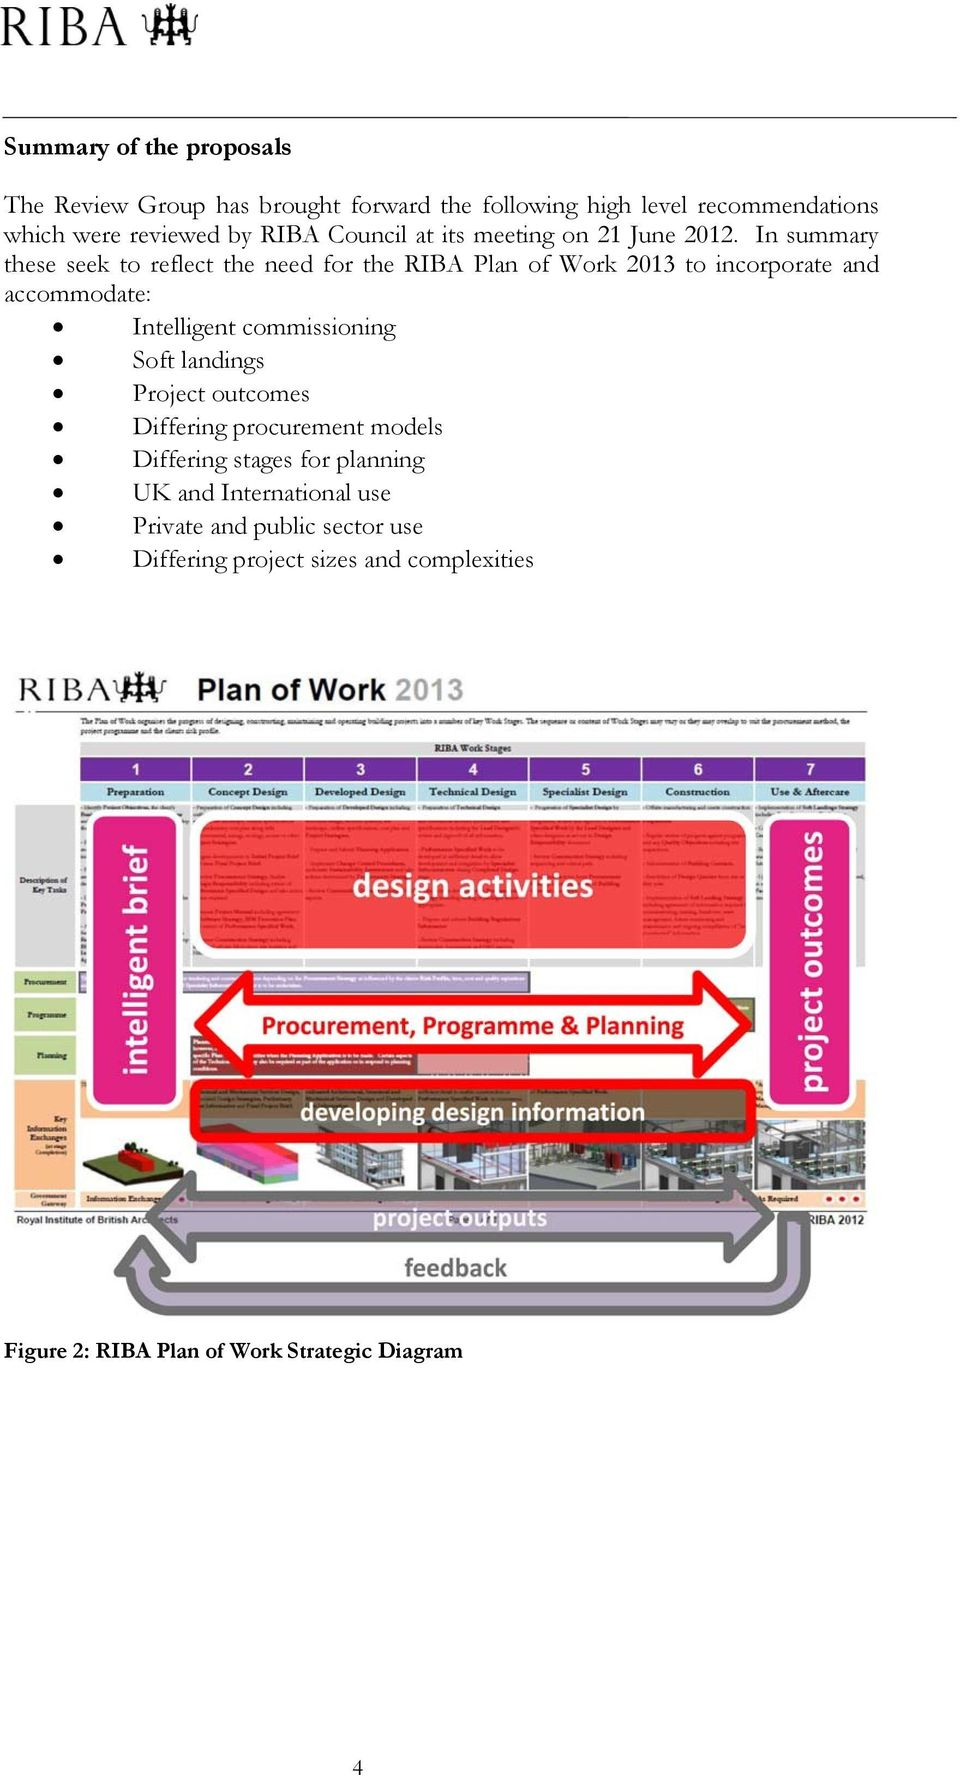 In summary these seek to reflect the need for the RIBA Plan of Work 2013 to incorporate and accommodate: Intelligent commissioning